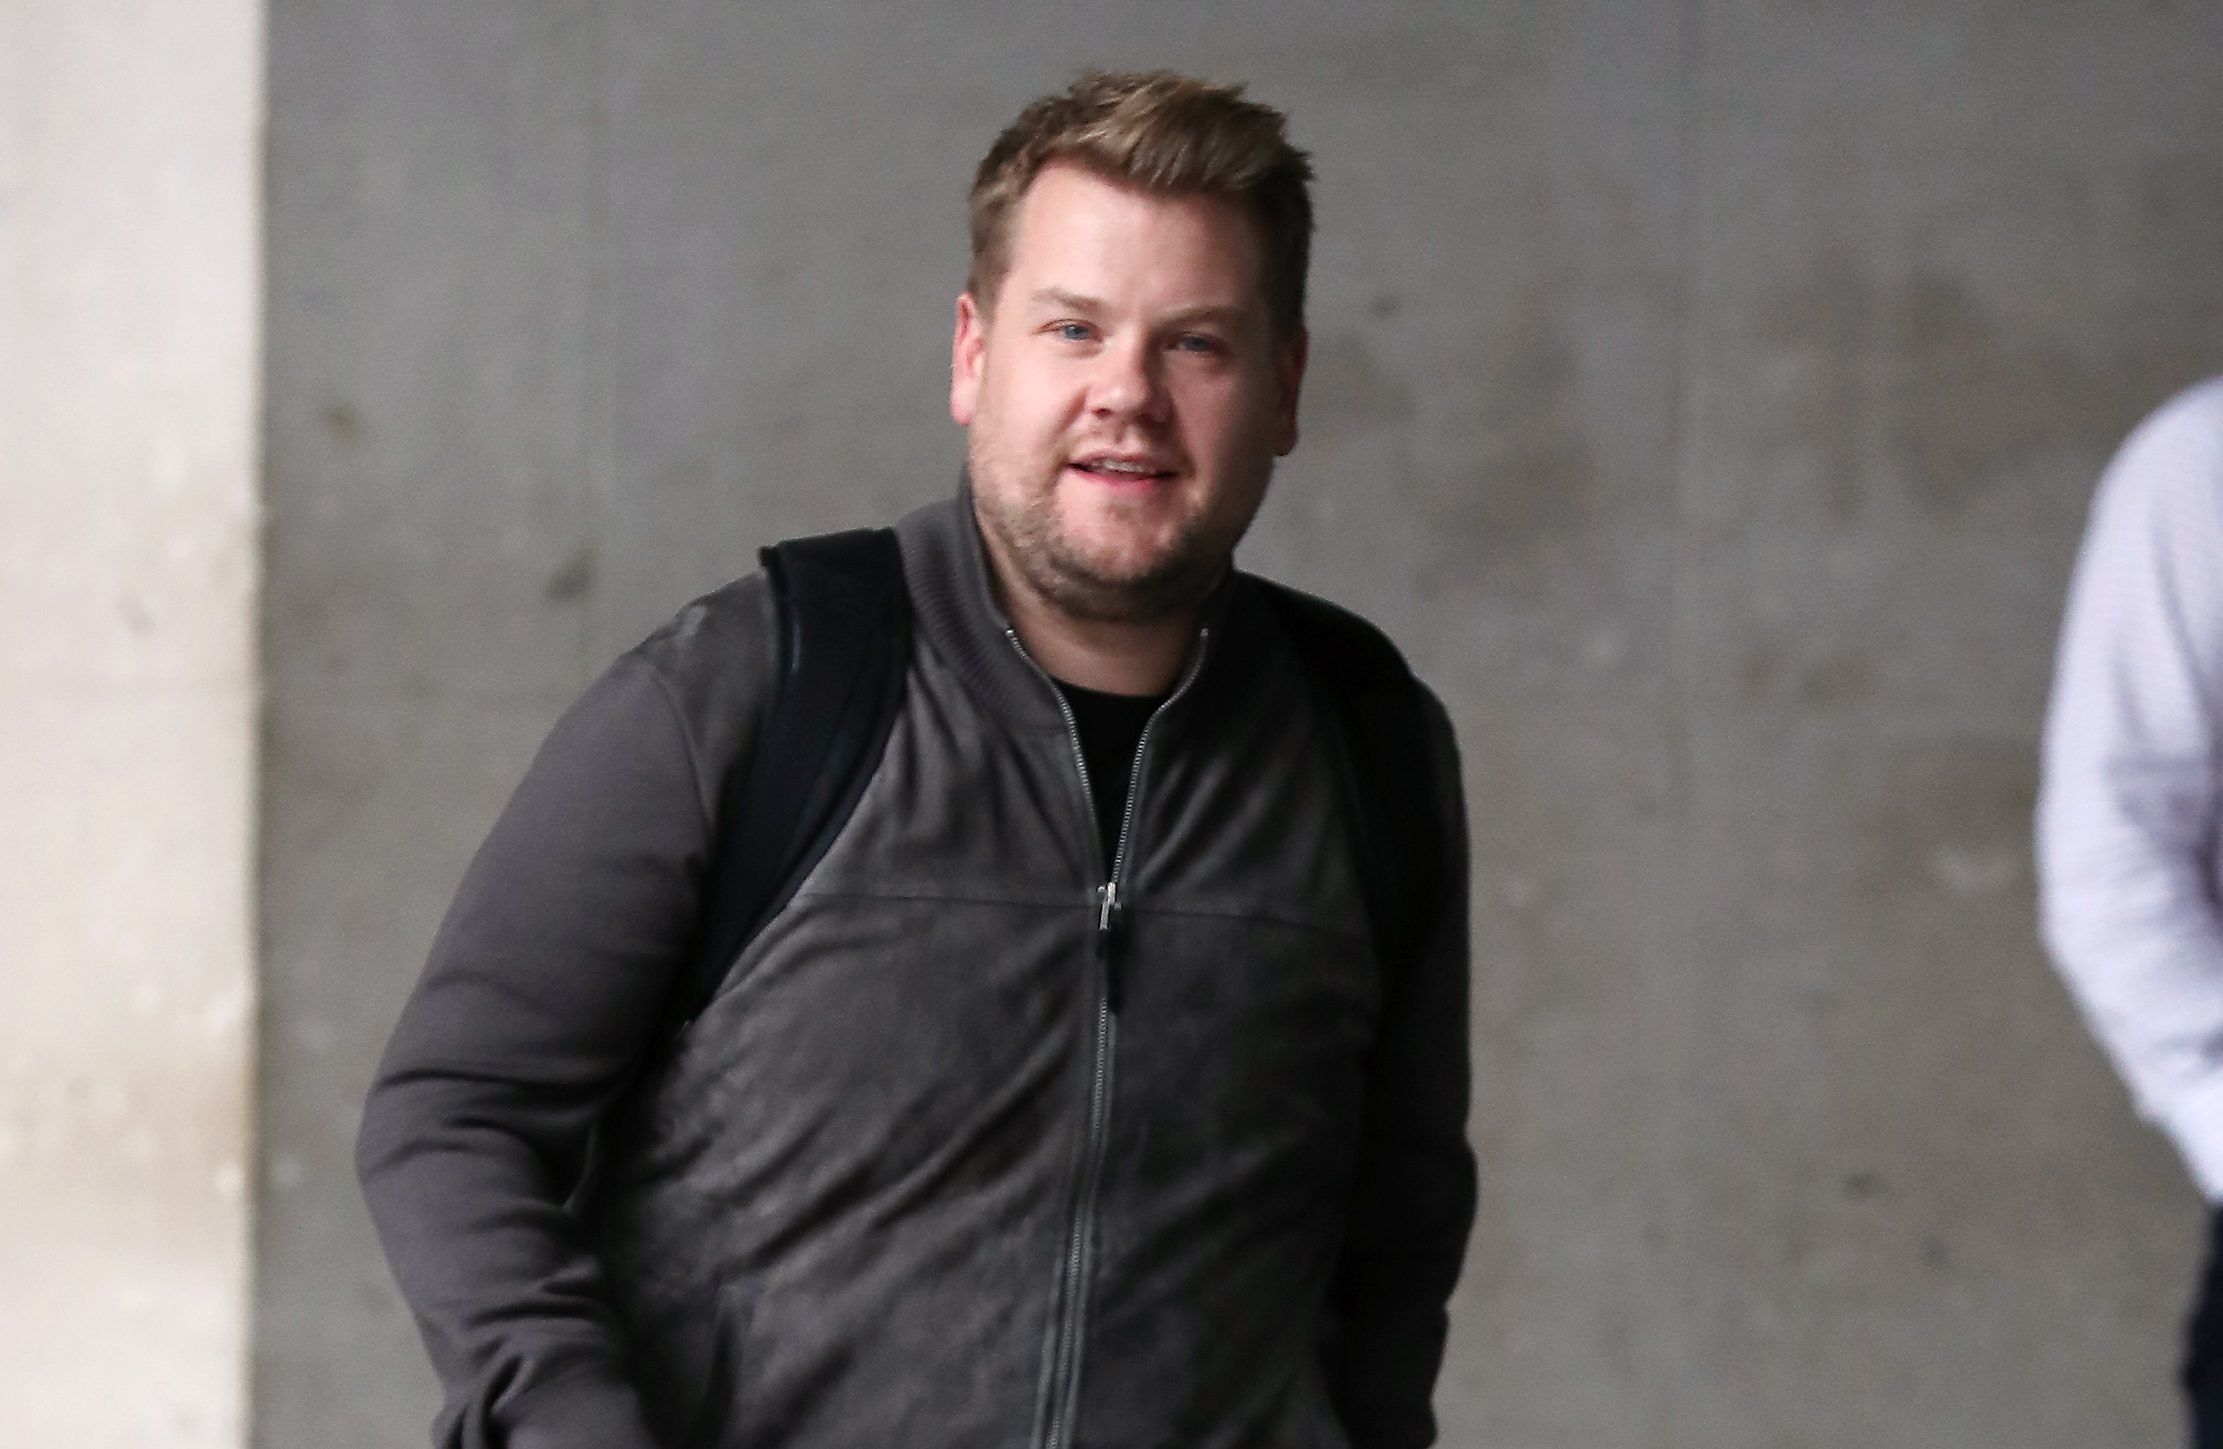 A TV ad for confused.com starring James Corden has been banned (Photo by Neil Mockford/GC Images)